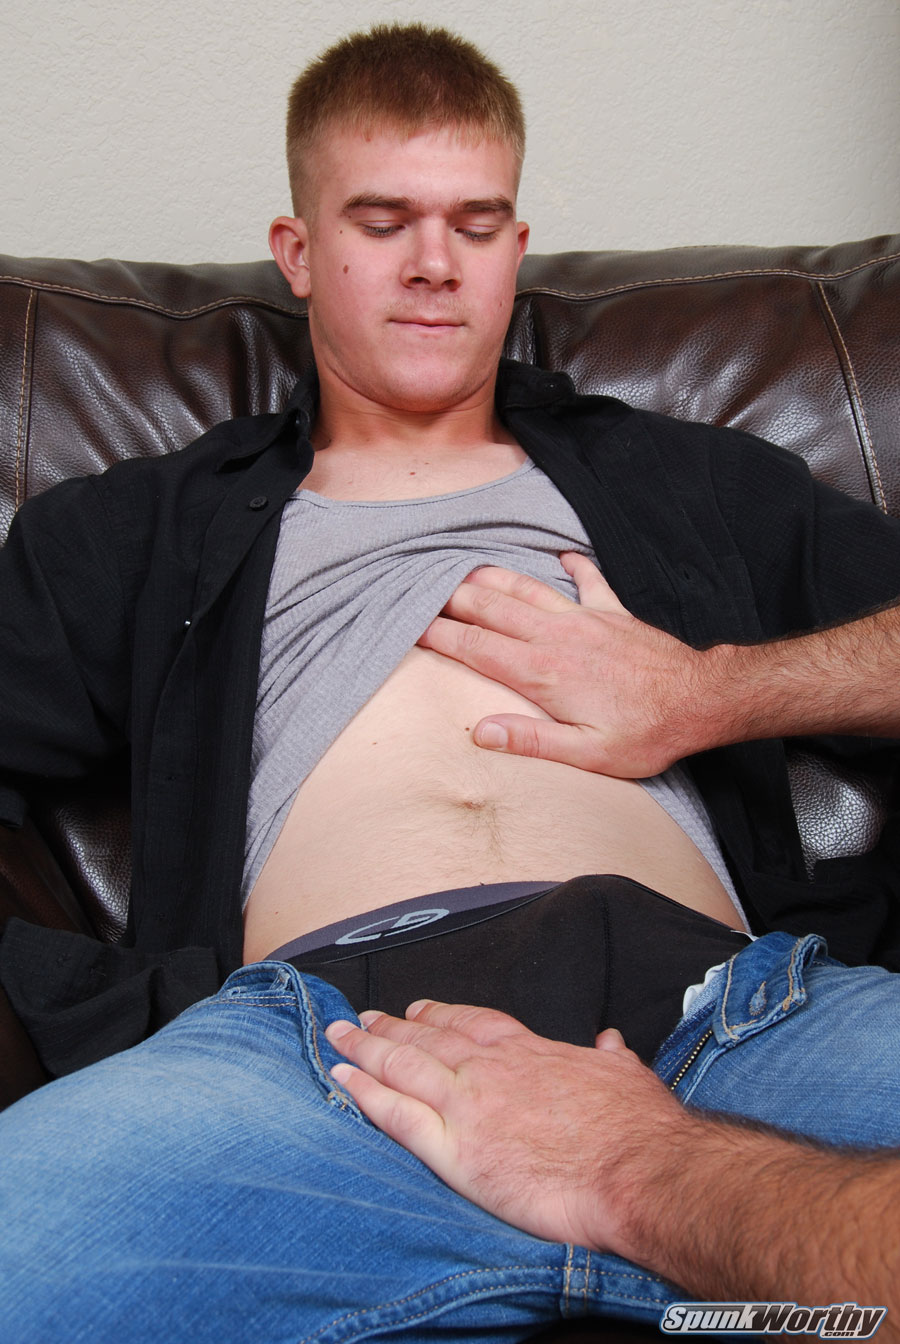 SpunkWorthy-Galen-US-Marine-Getting-His-Cock-Sucked-Amateur-Gay-Porn-01.jpg